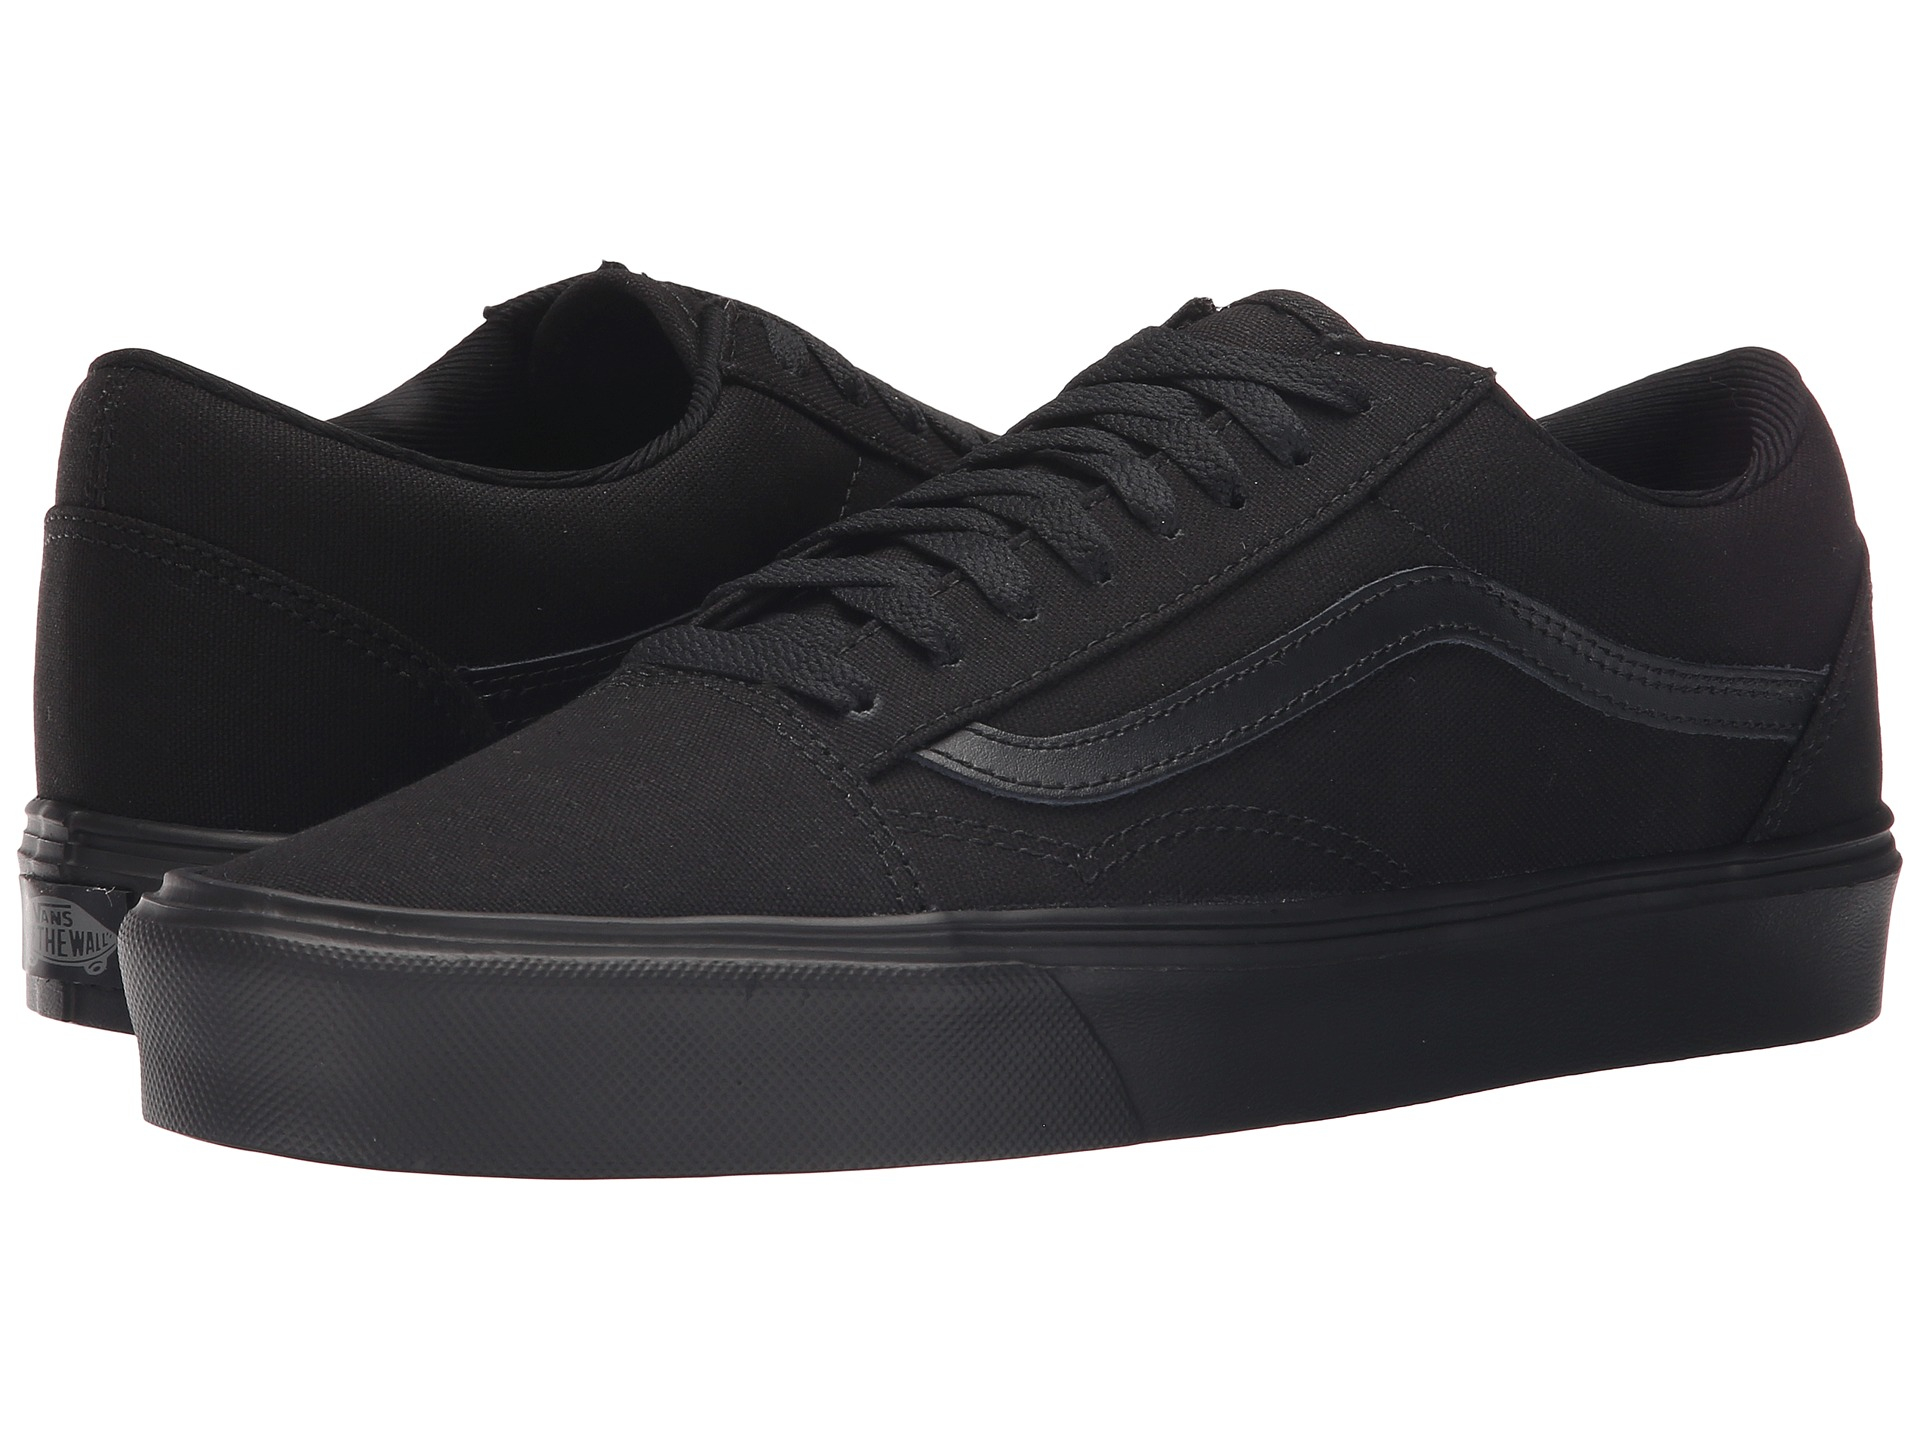 vans old skool lite in black for men lyst. Black Bedroom Furniture Sets. Home Design Ideas